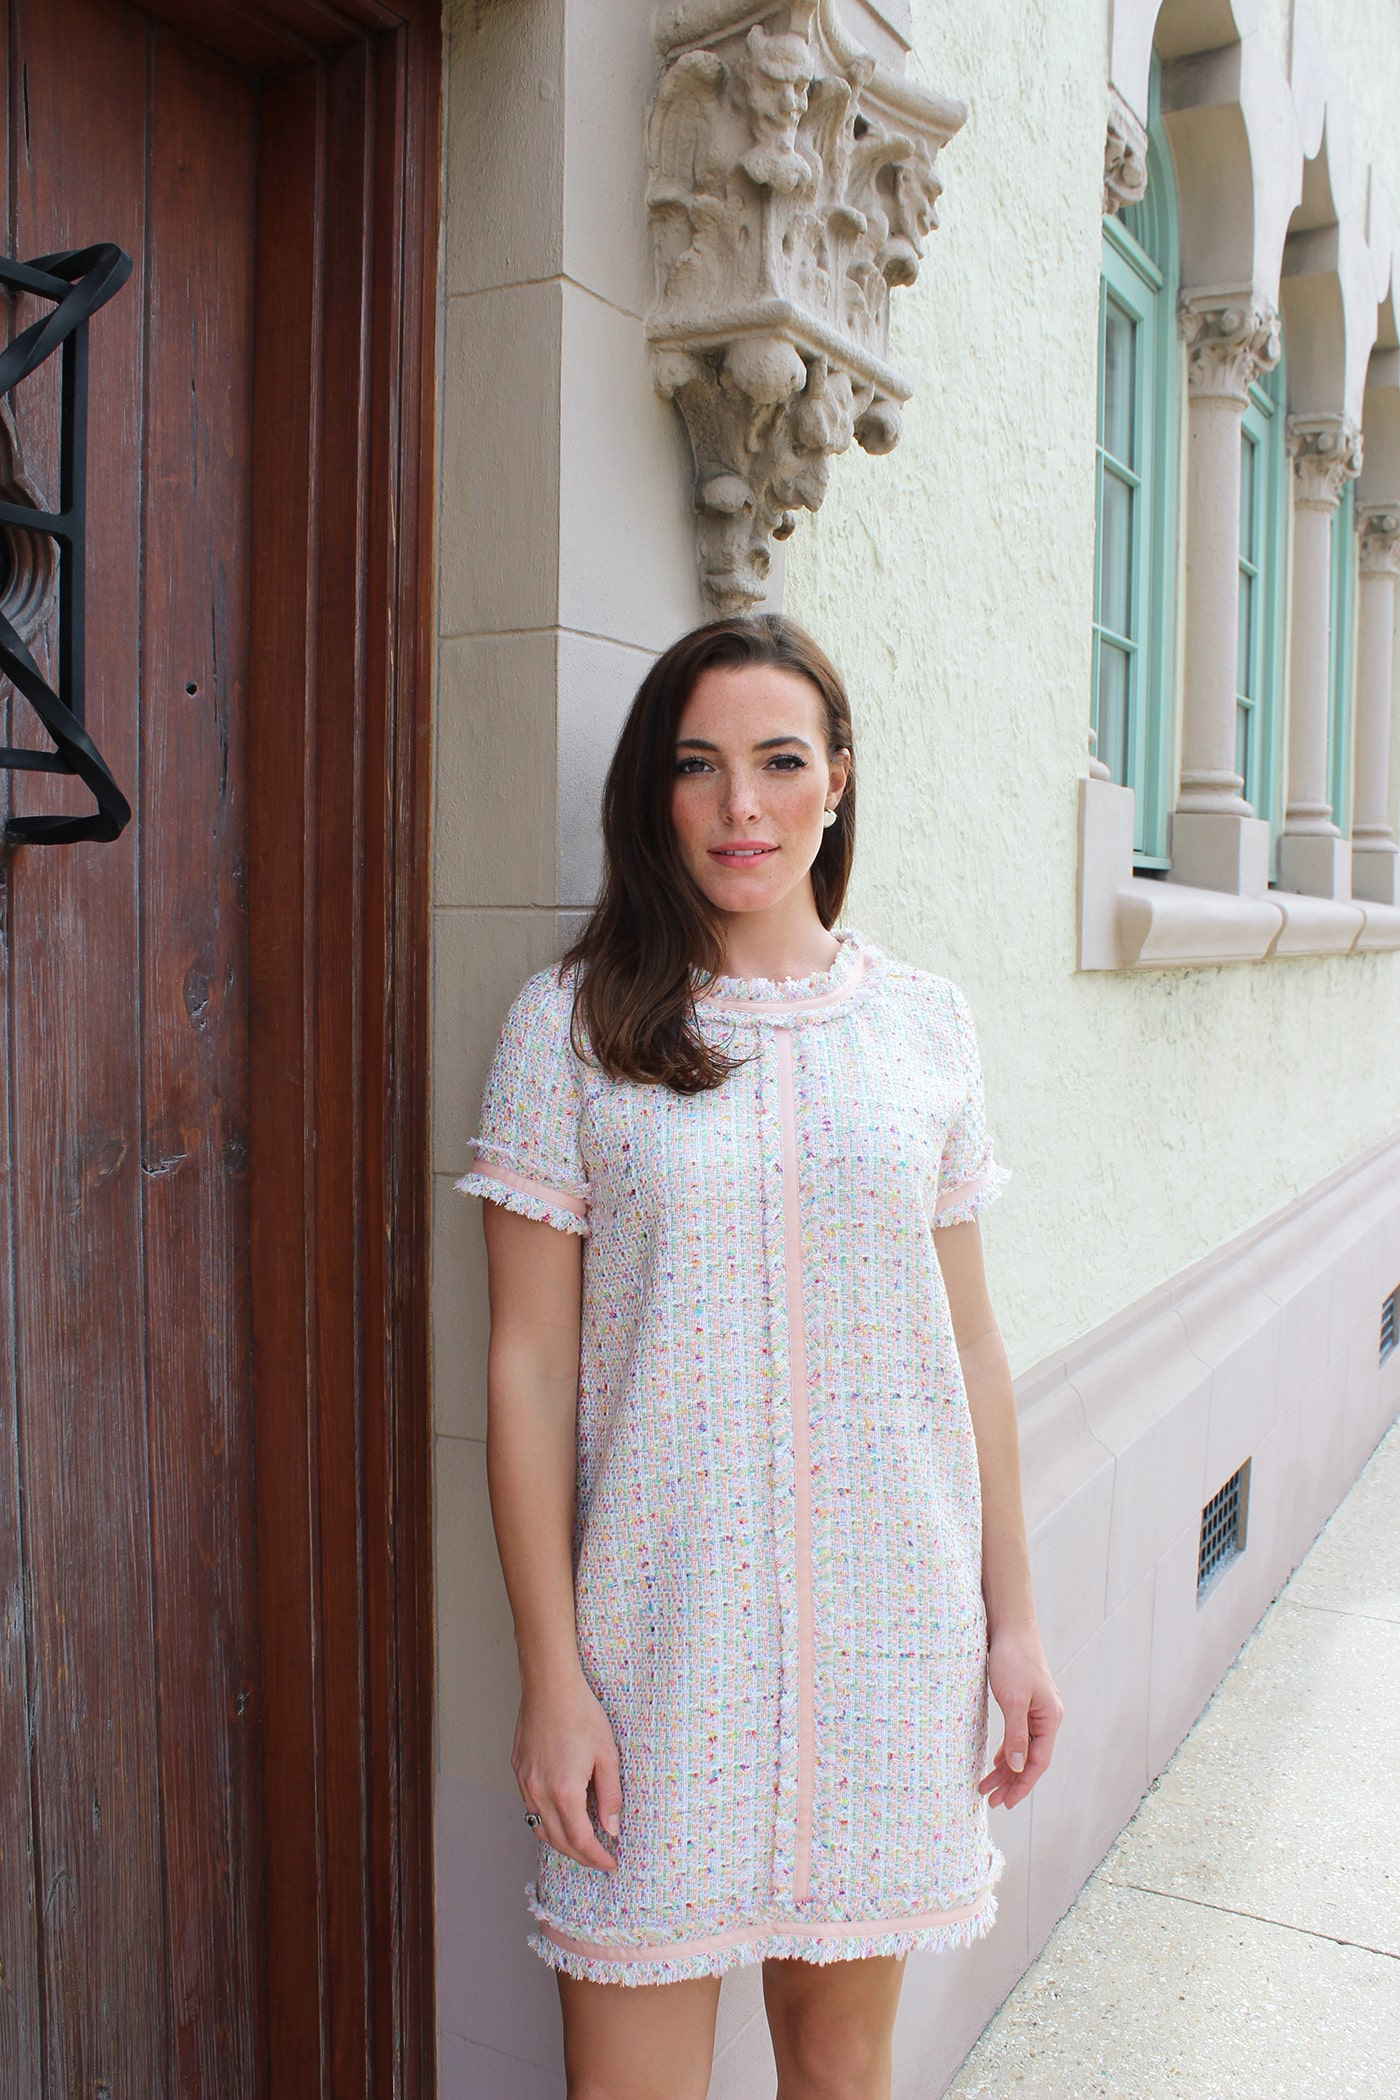 This casual tweed dress is made from richly-textured matrix-patterned cloth in spring colors and finished with pink trim, creating a light and airy feel.